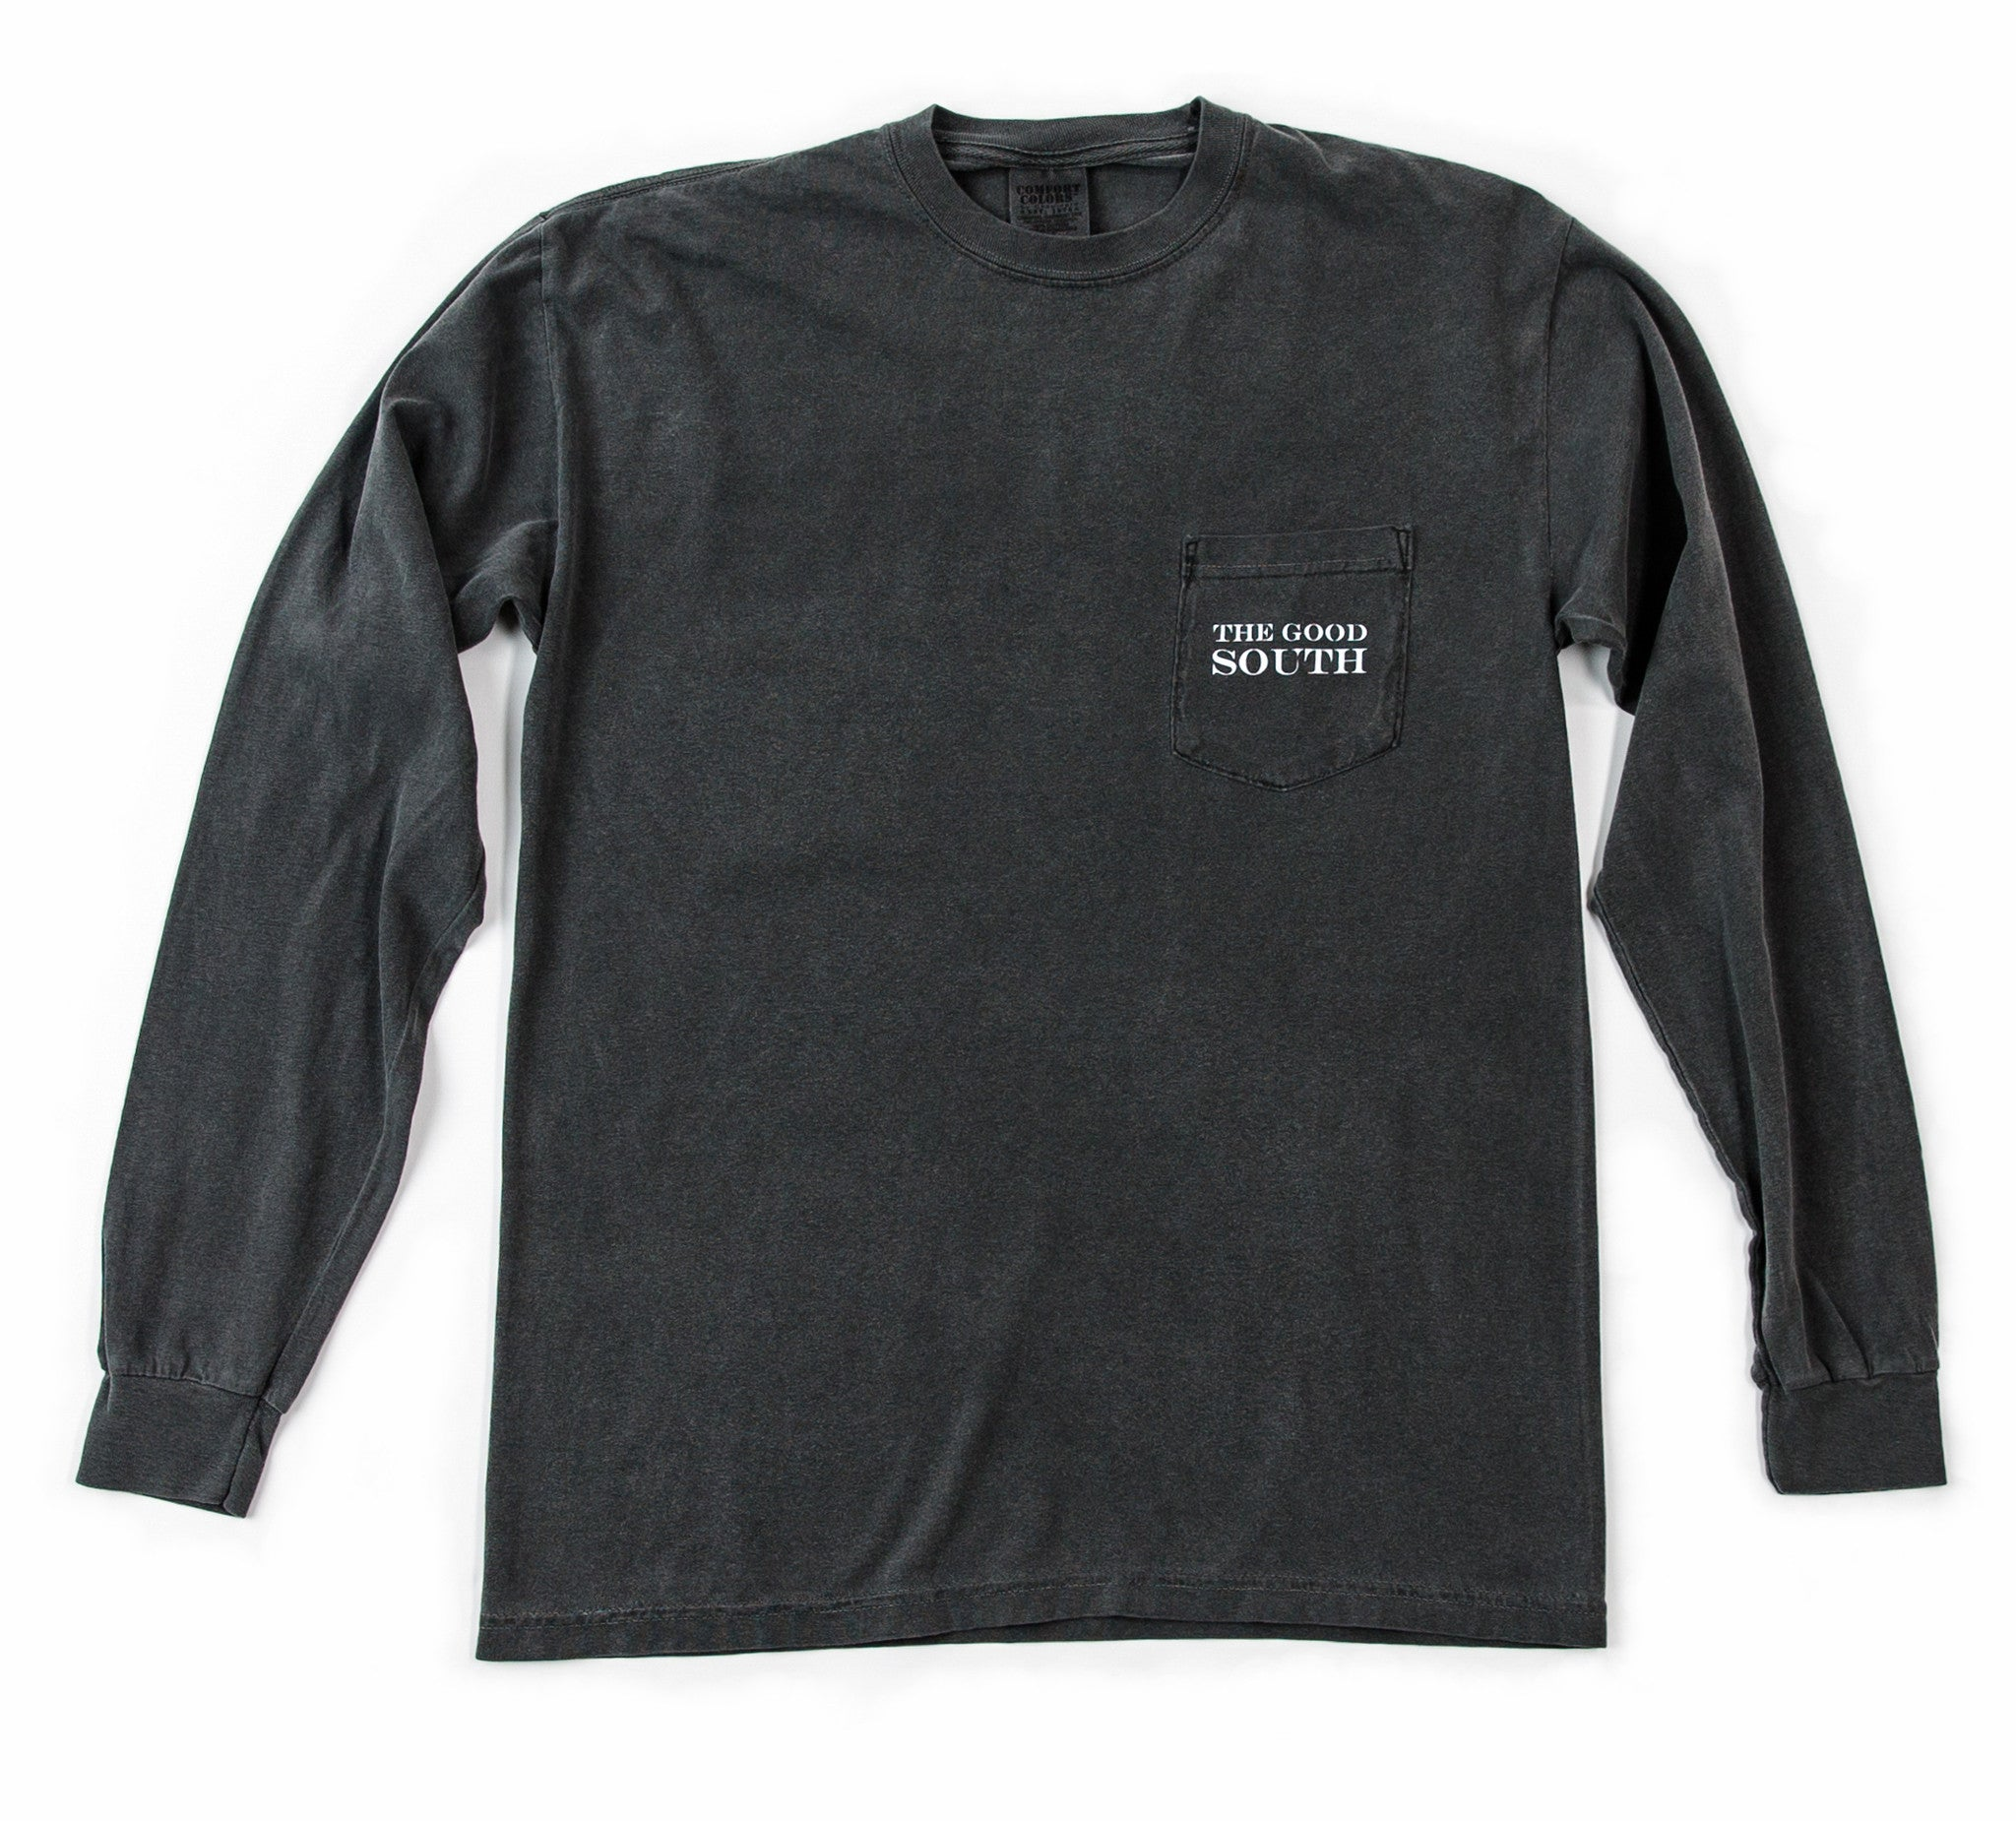 The Good South Long Sleeve T-Shirt: Pepper